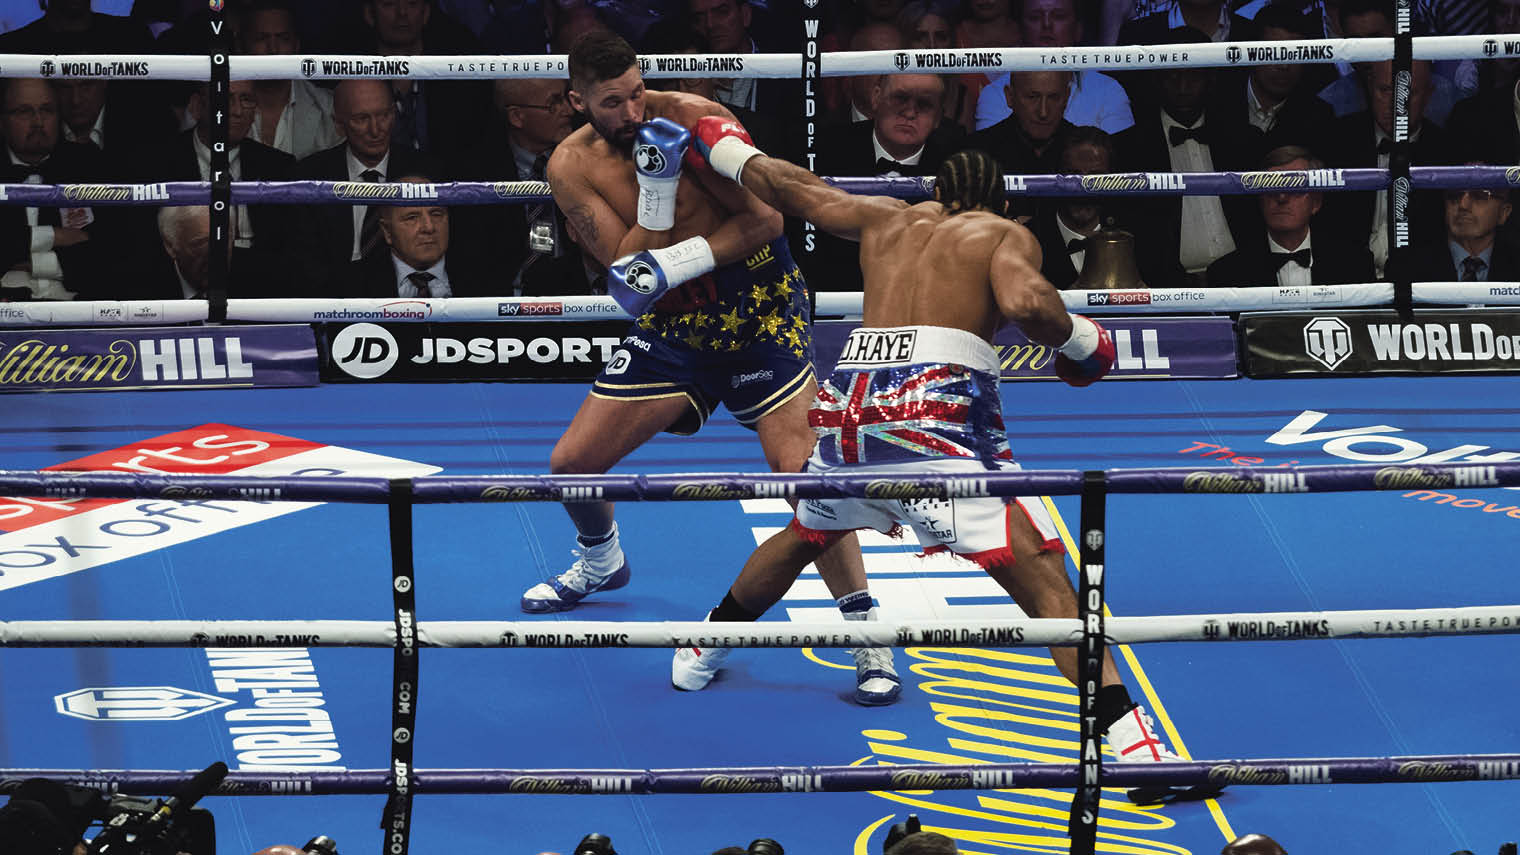 David Haye boxing